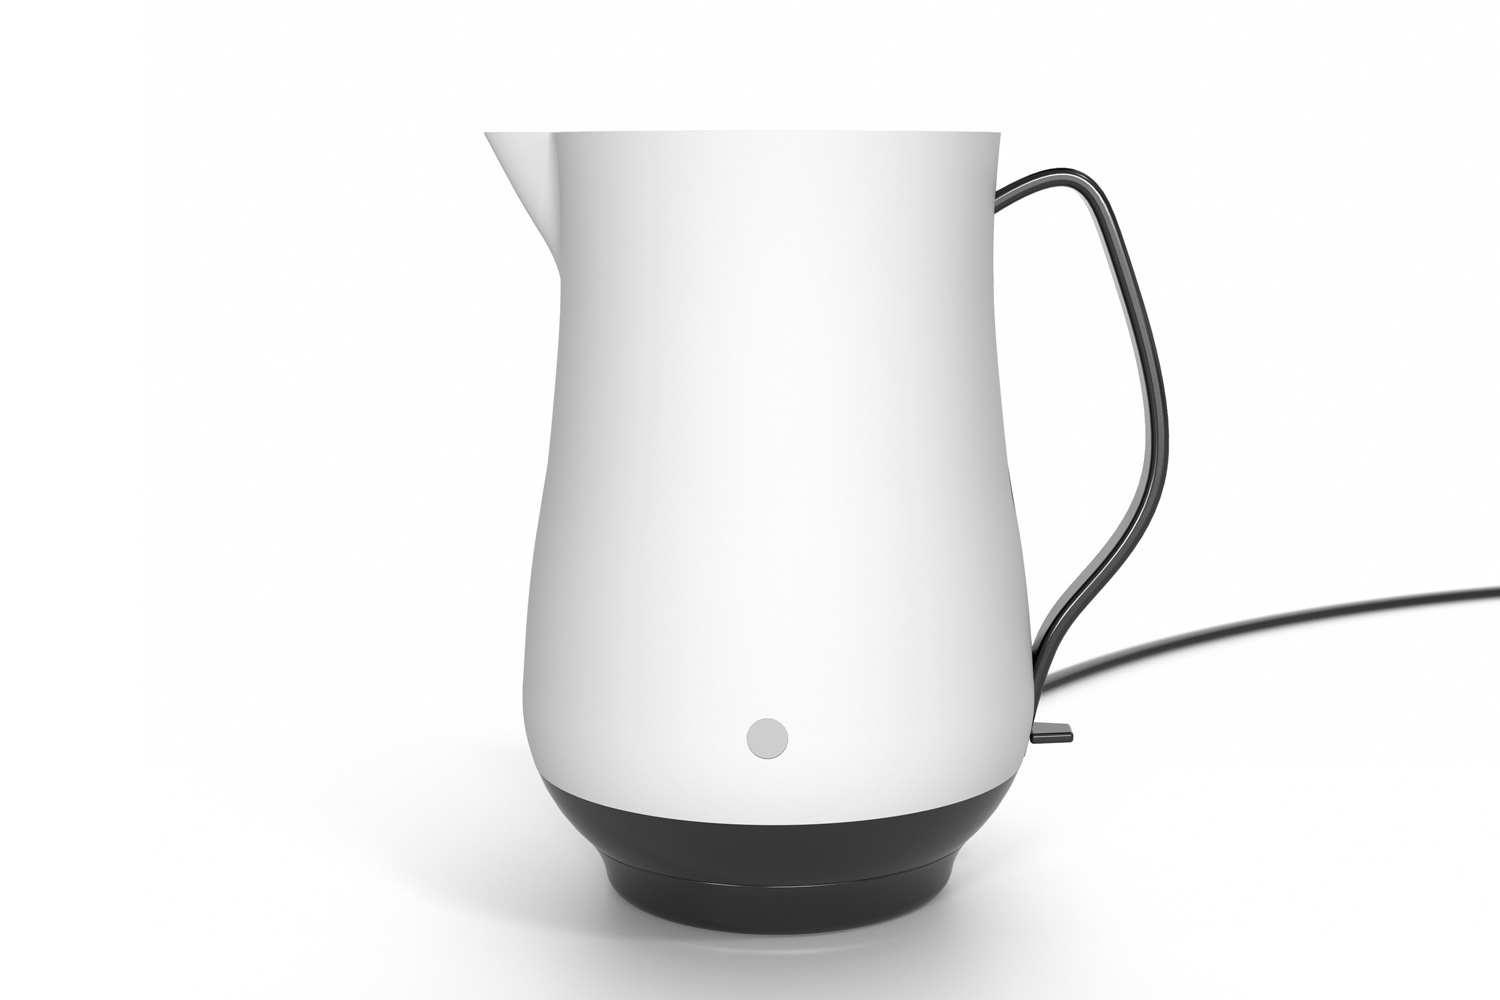 Electric-kettle-44W.jpg